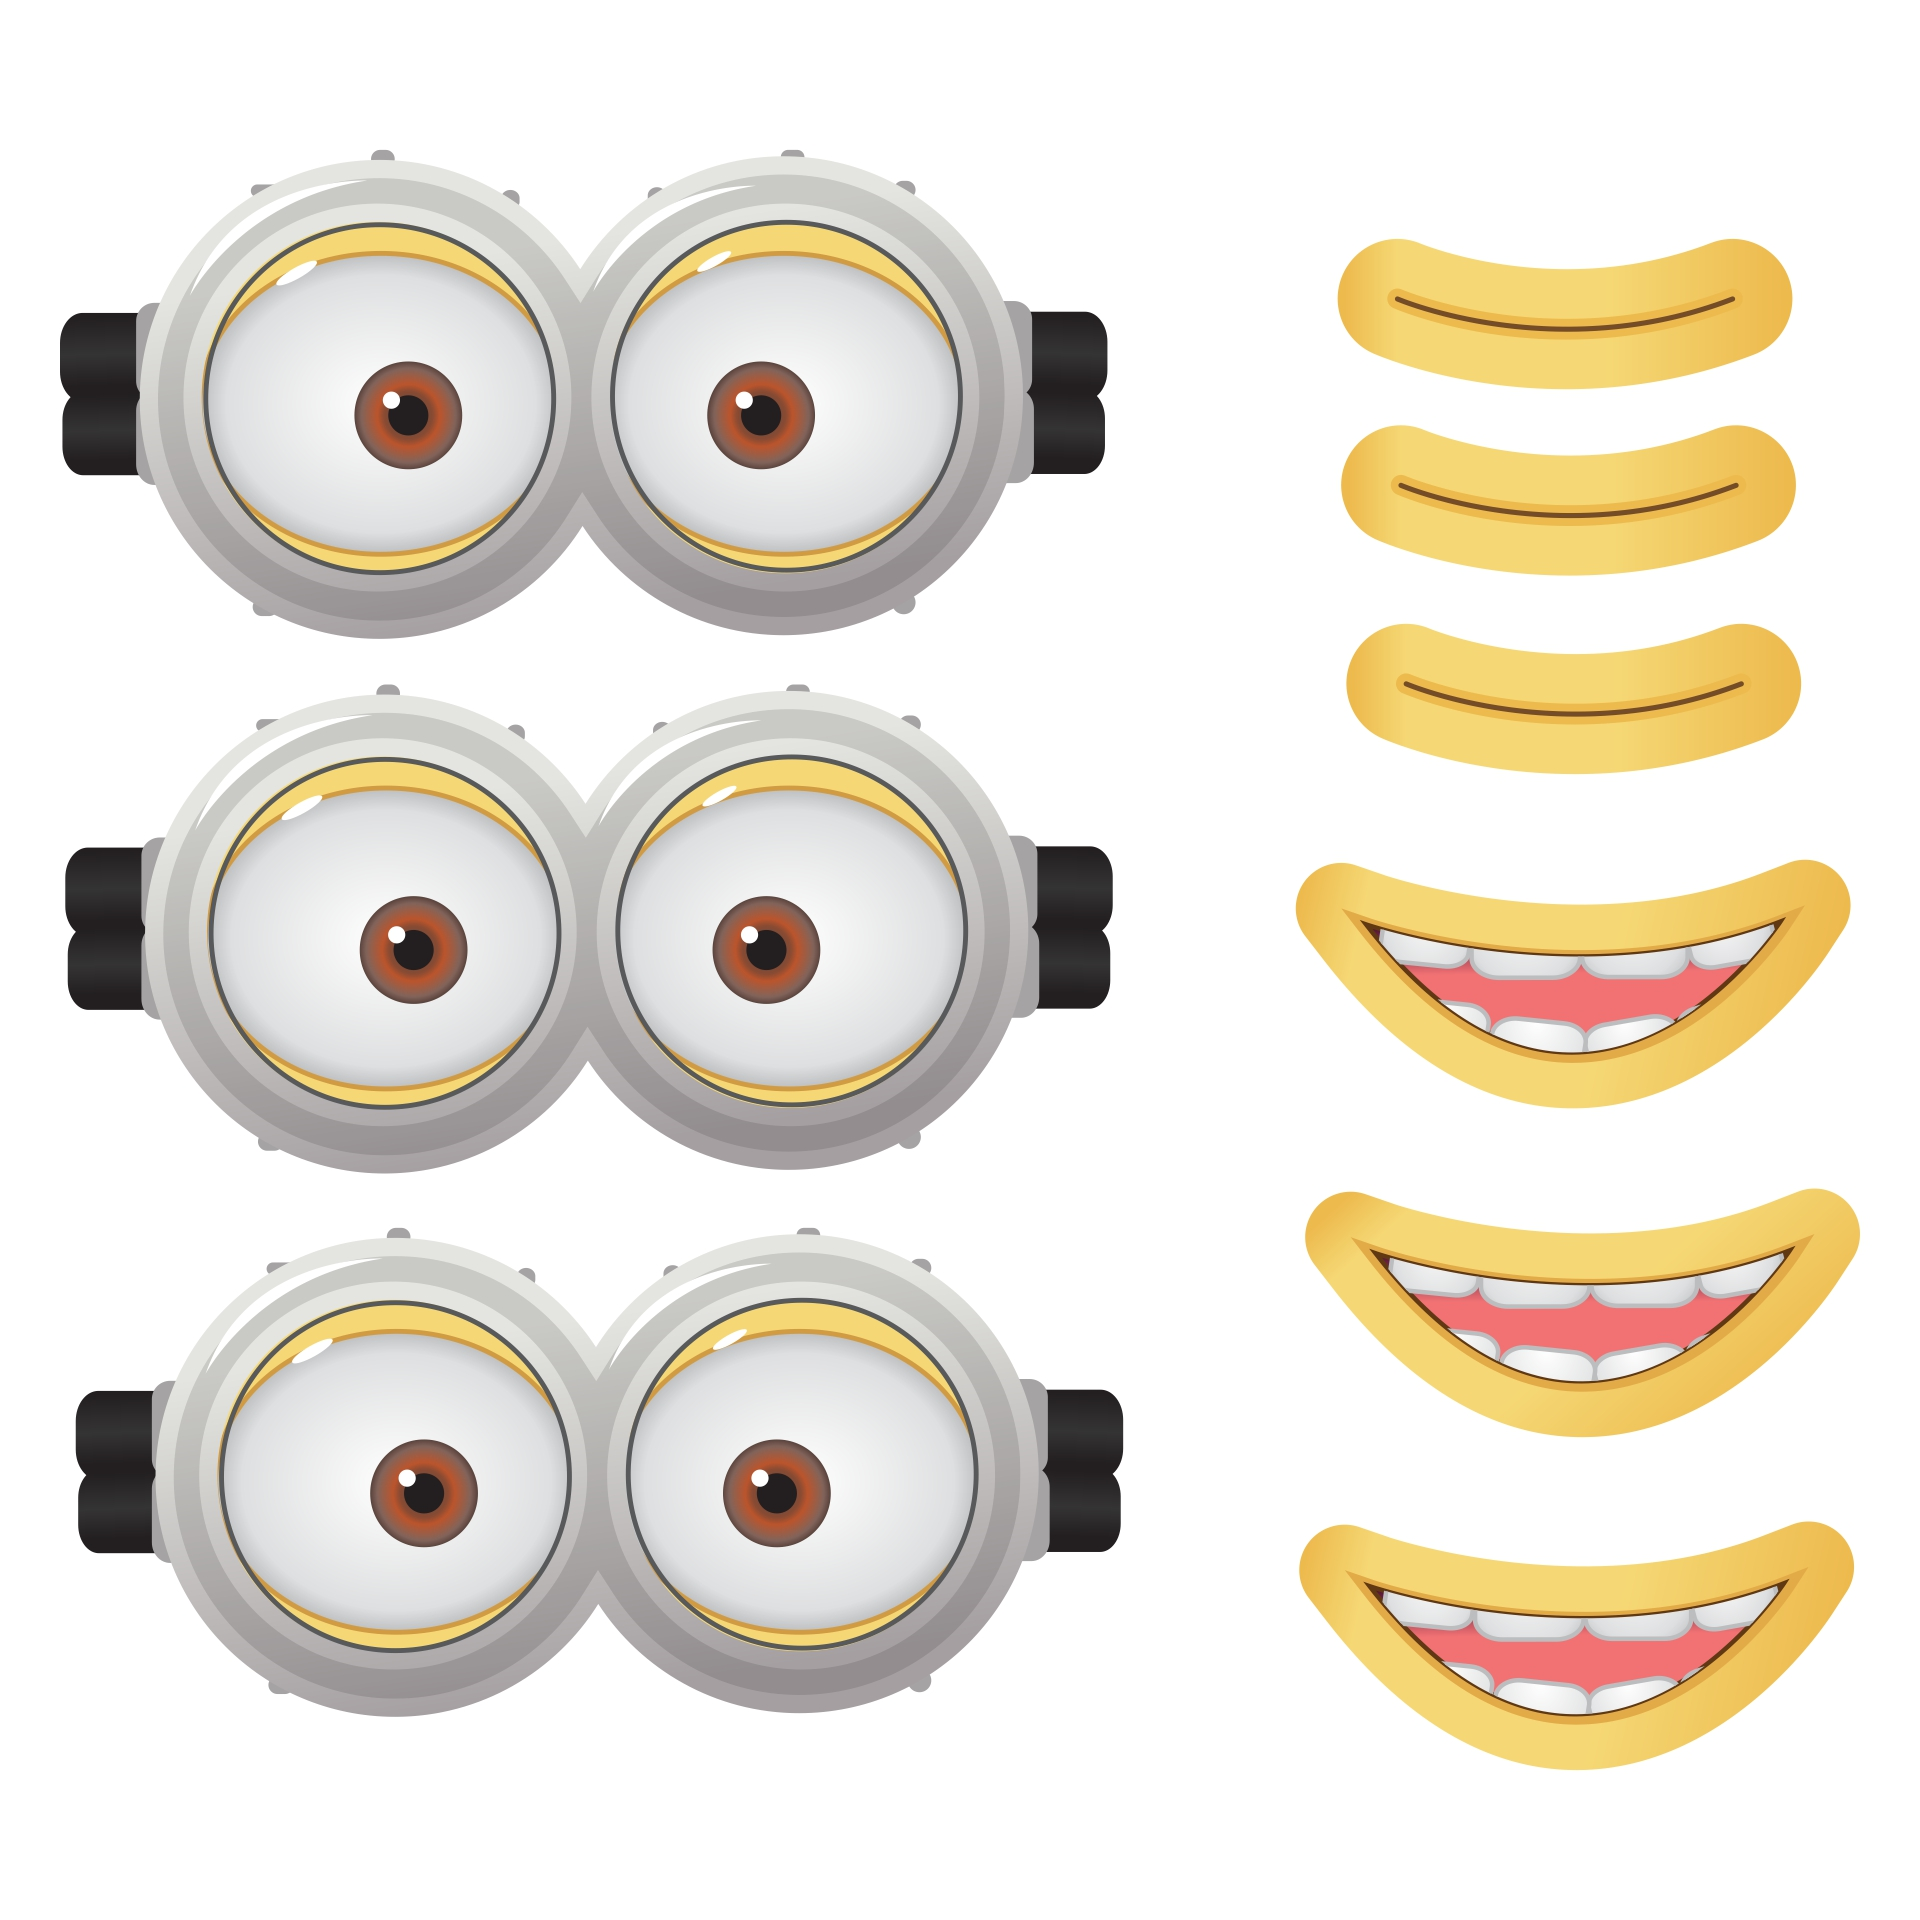 Current image for minion mouth printable